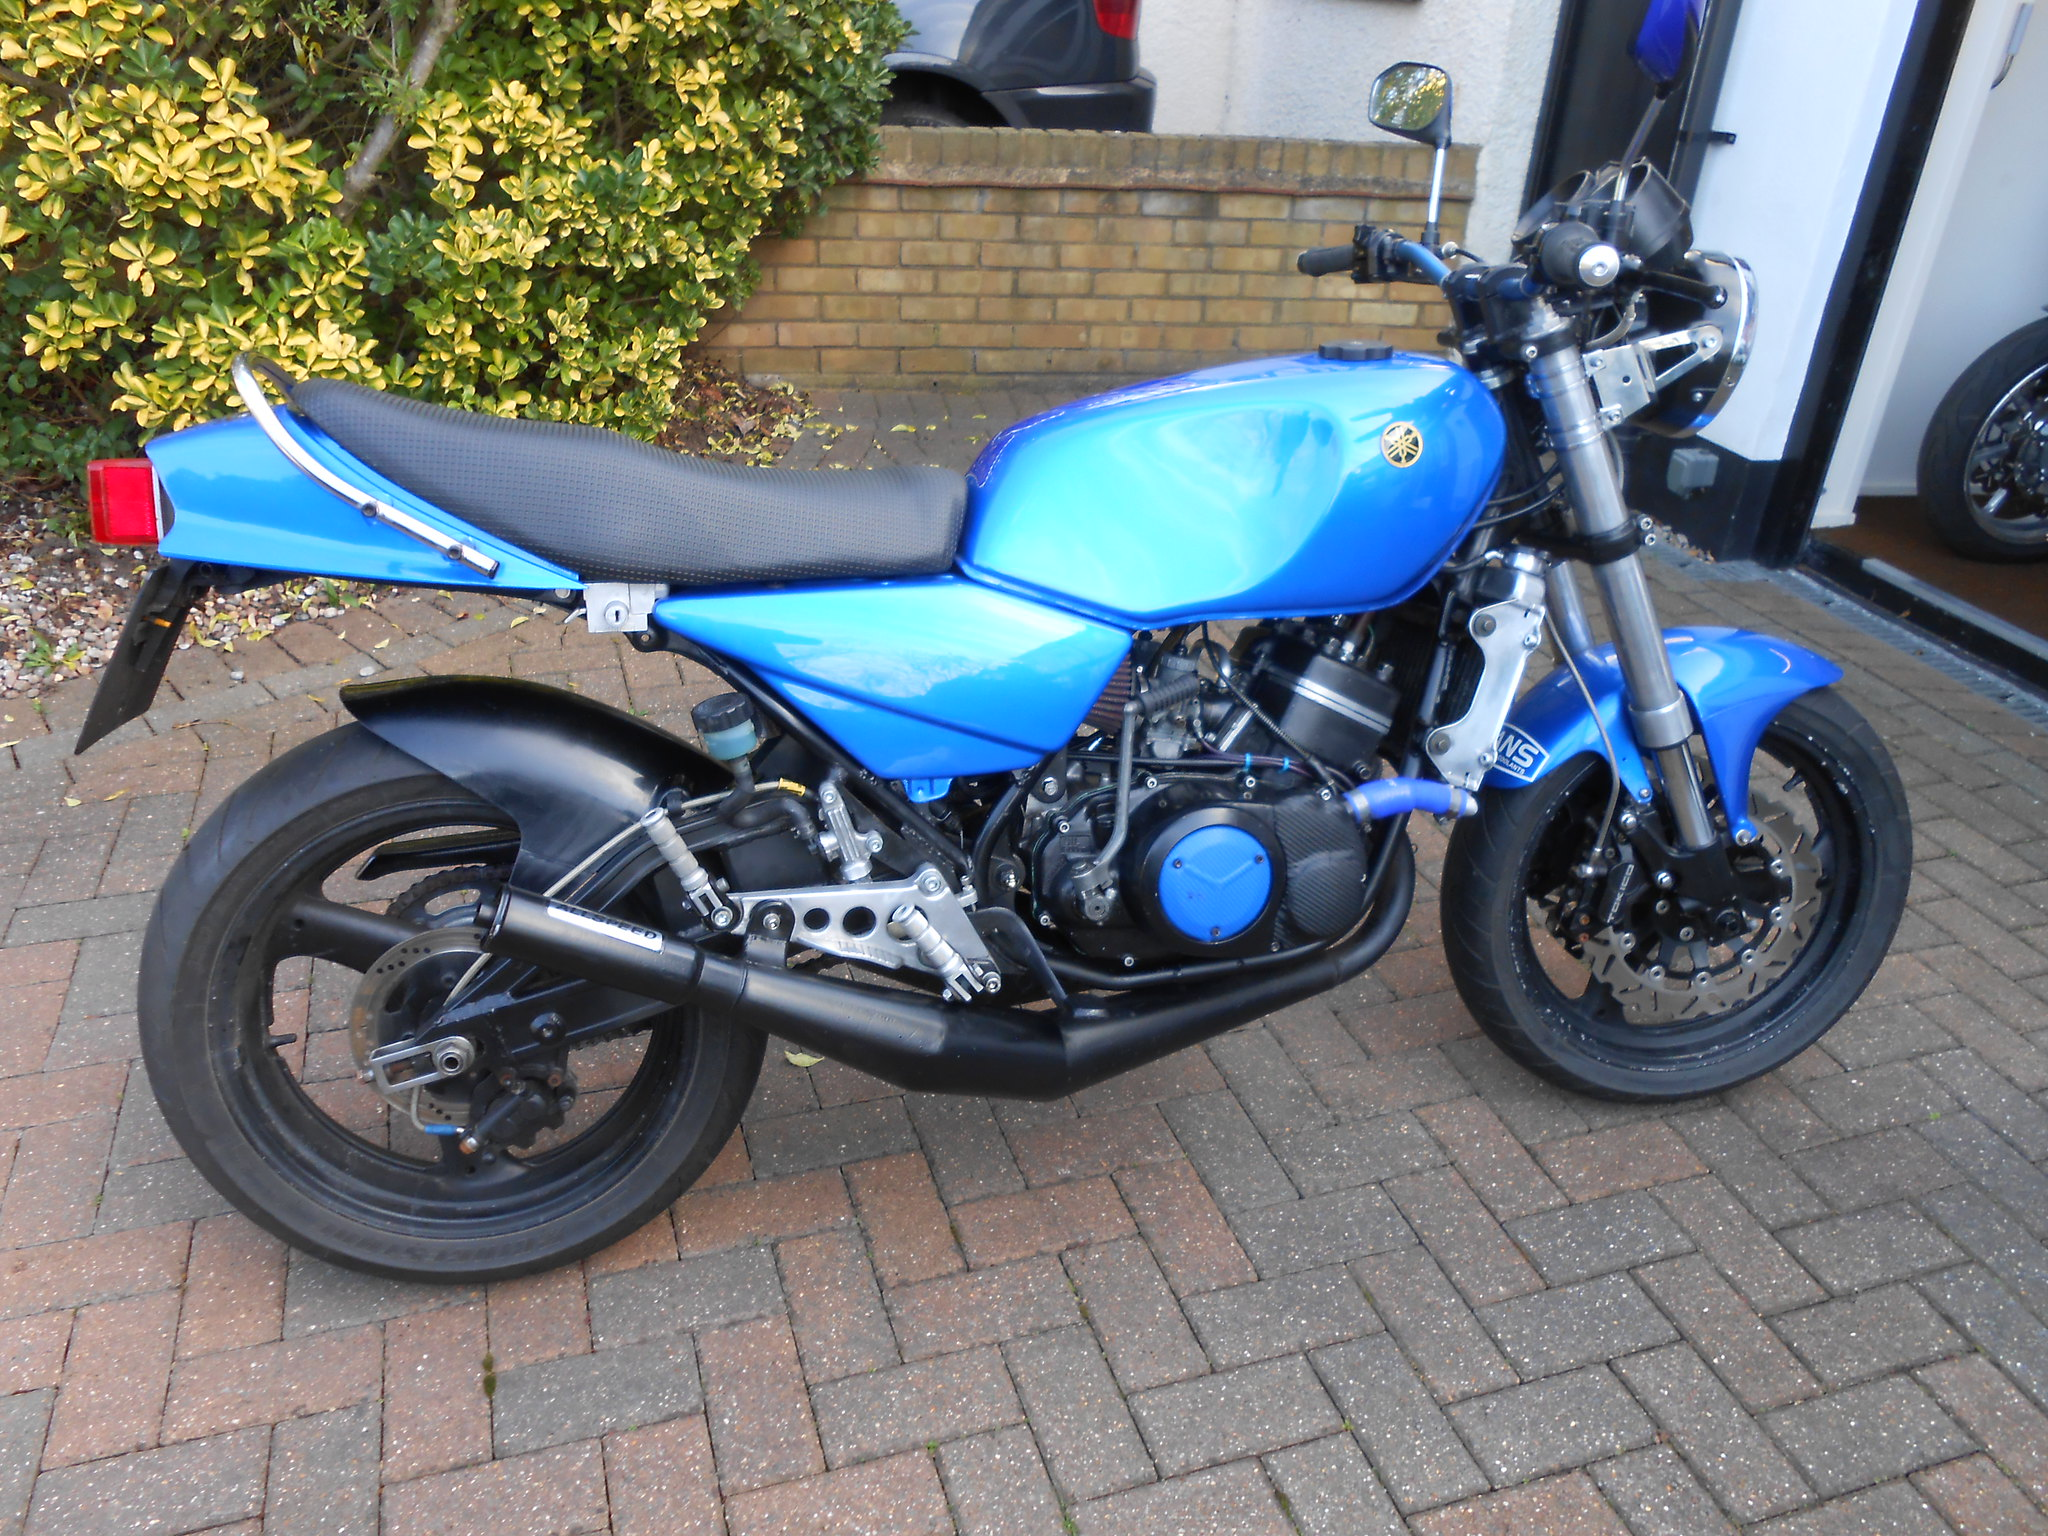 Rd350lc engine rebuild | The RD LC Crazy UK 2 Stroke Forum